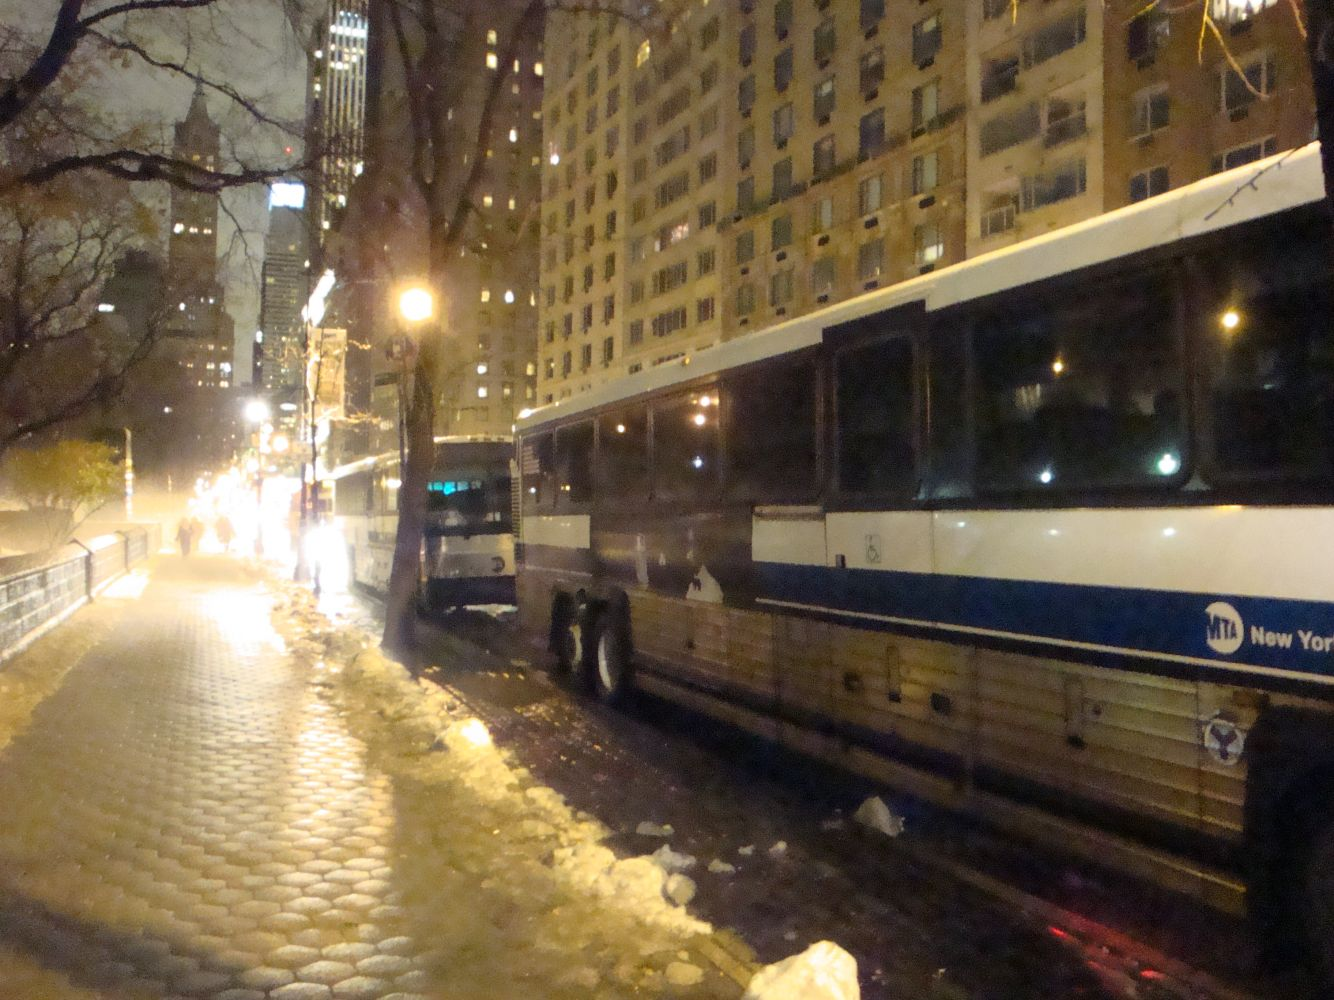 X1 Buses at Central Park South